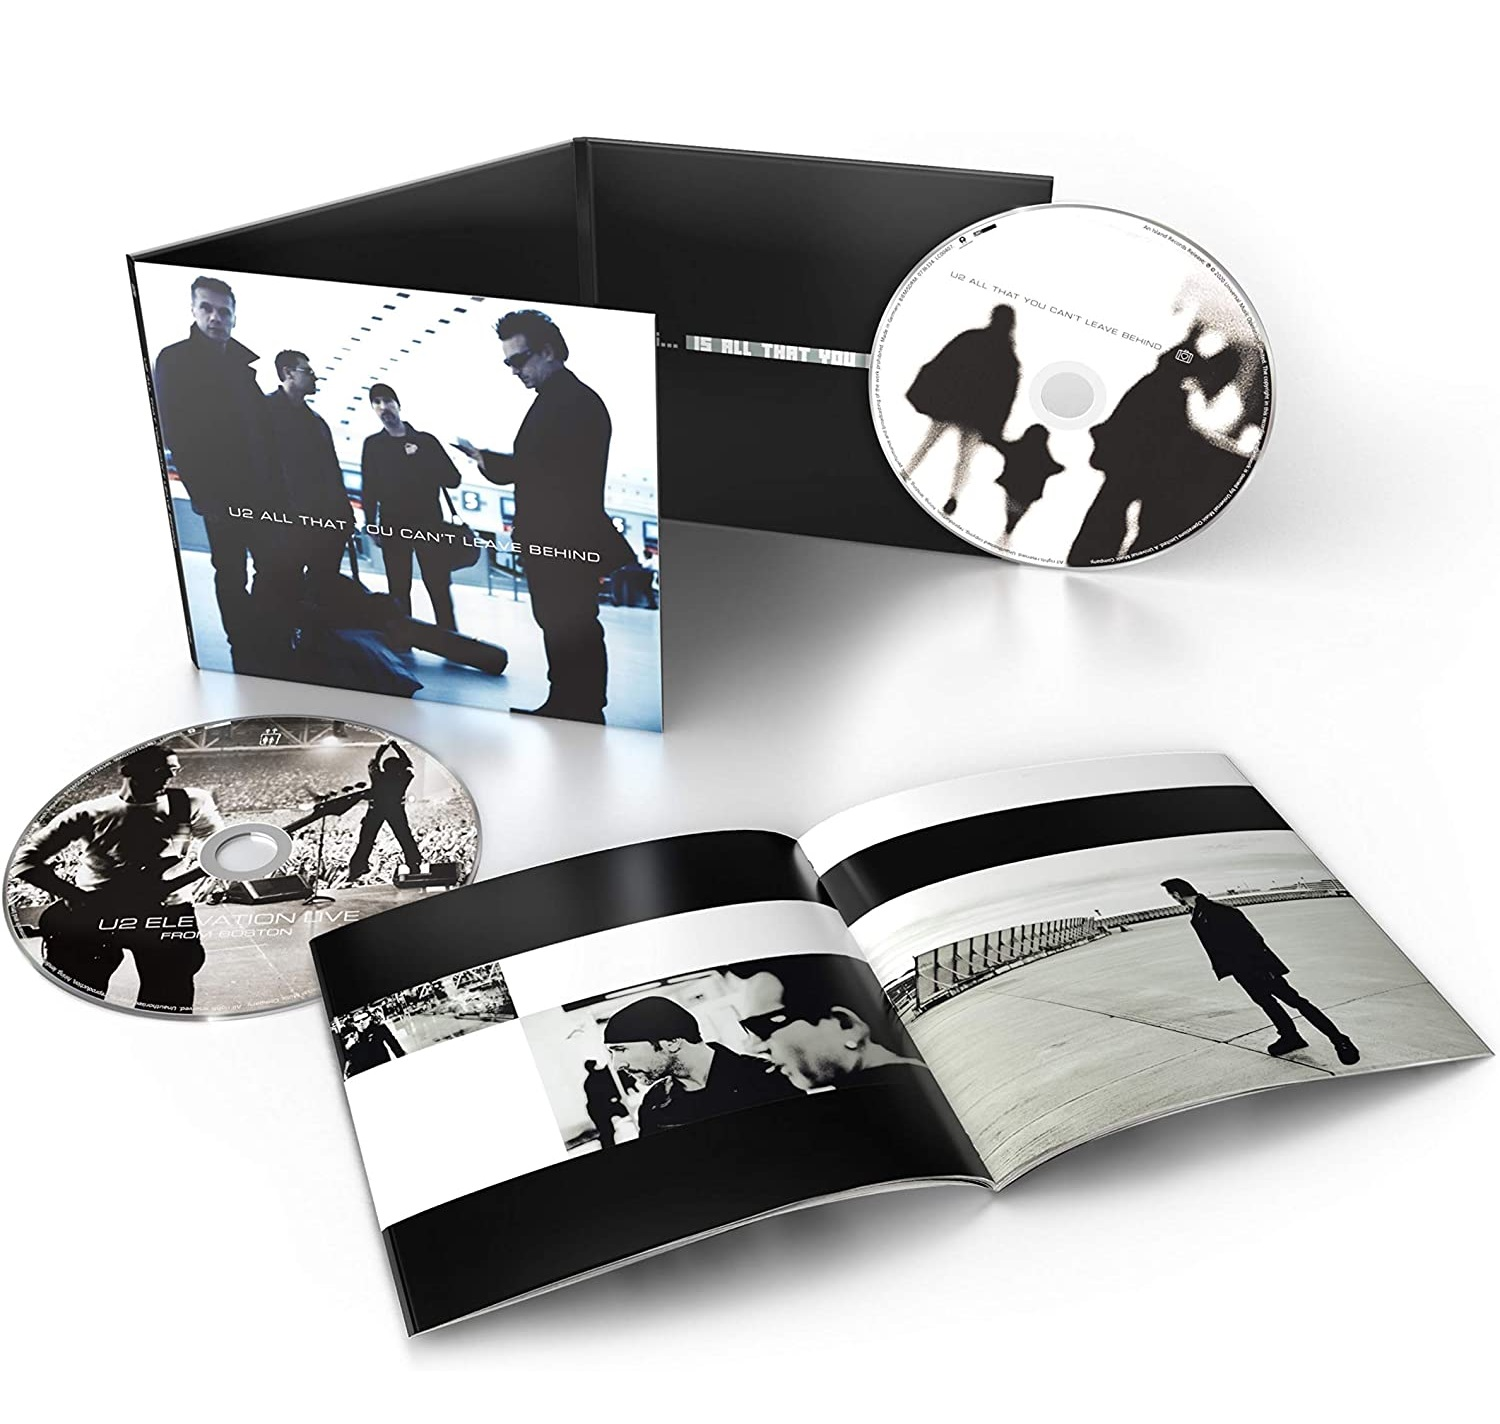 All That You Can't Leave Behind (20th Anniversary) - U2 - Musik -  - 0602507363482 - October 30, 2020